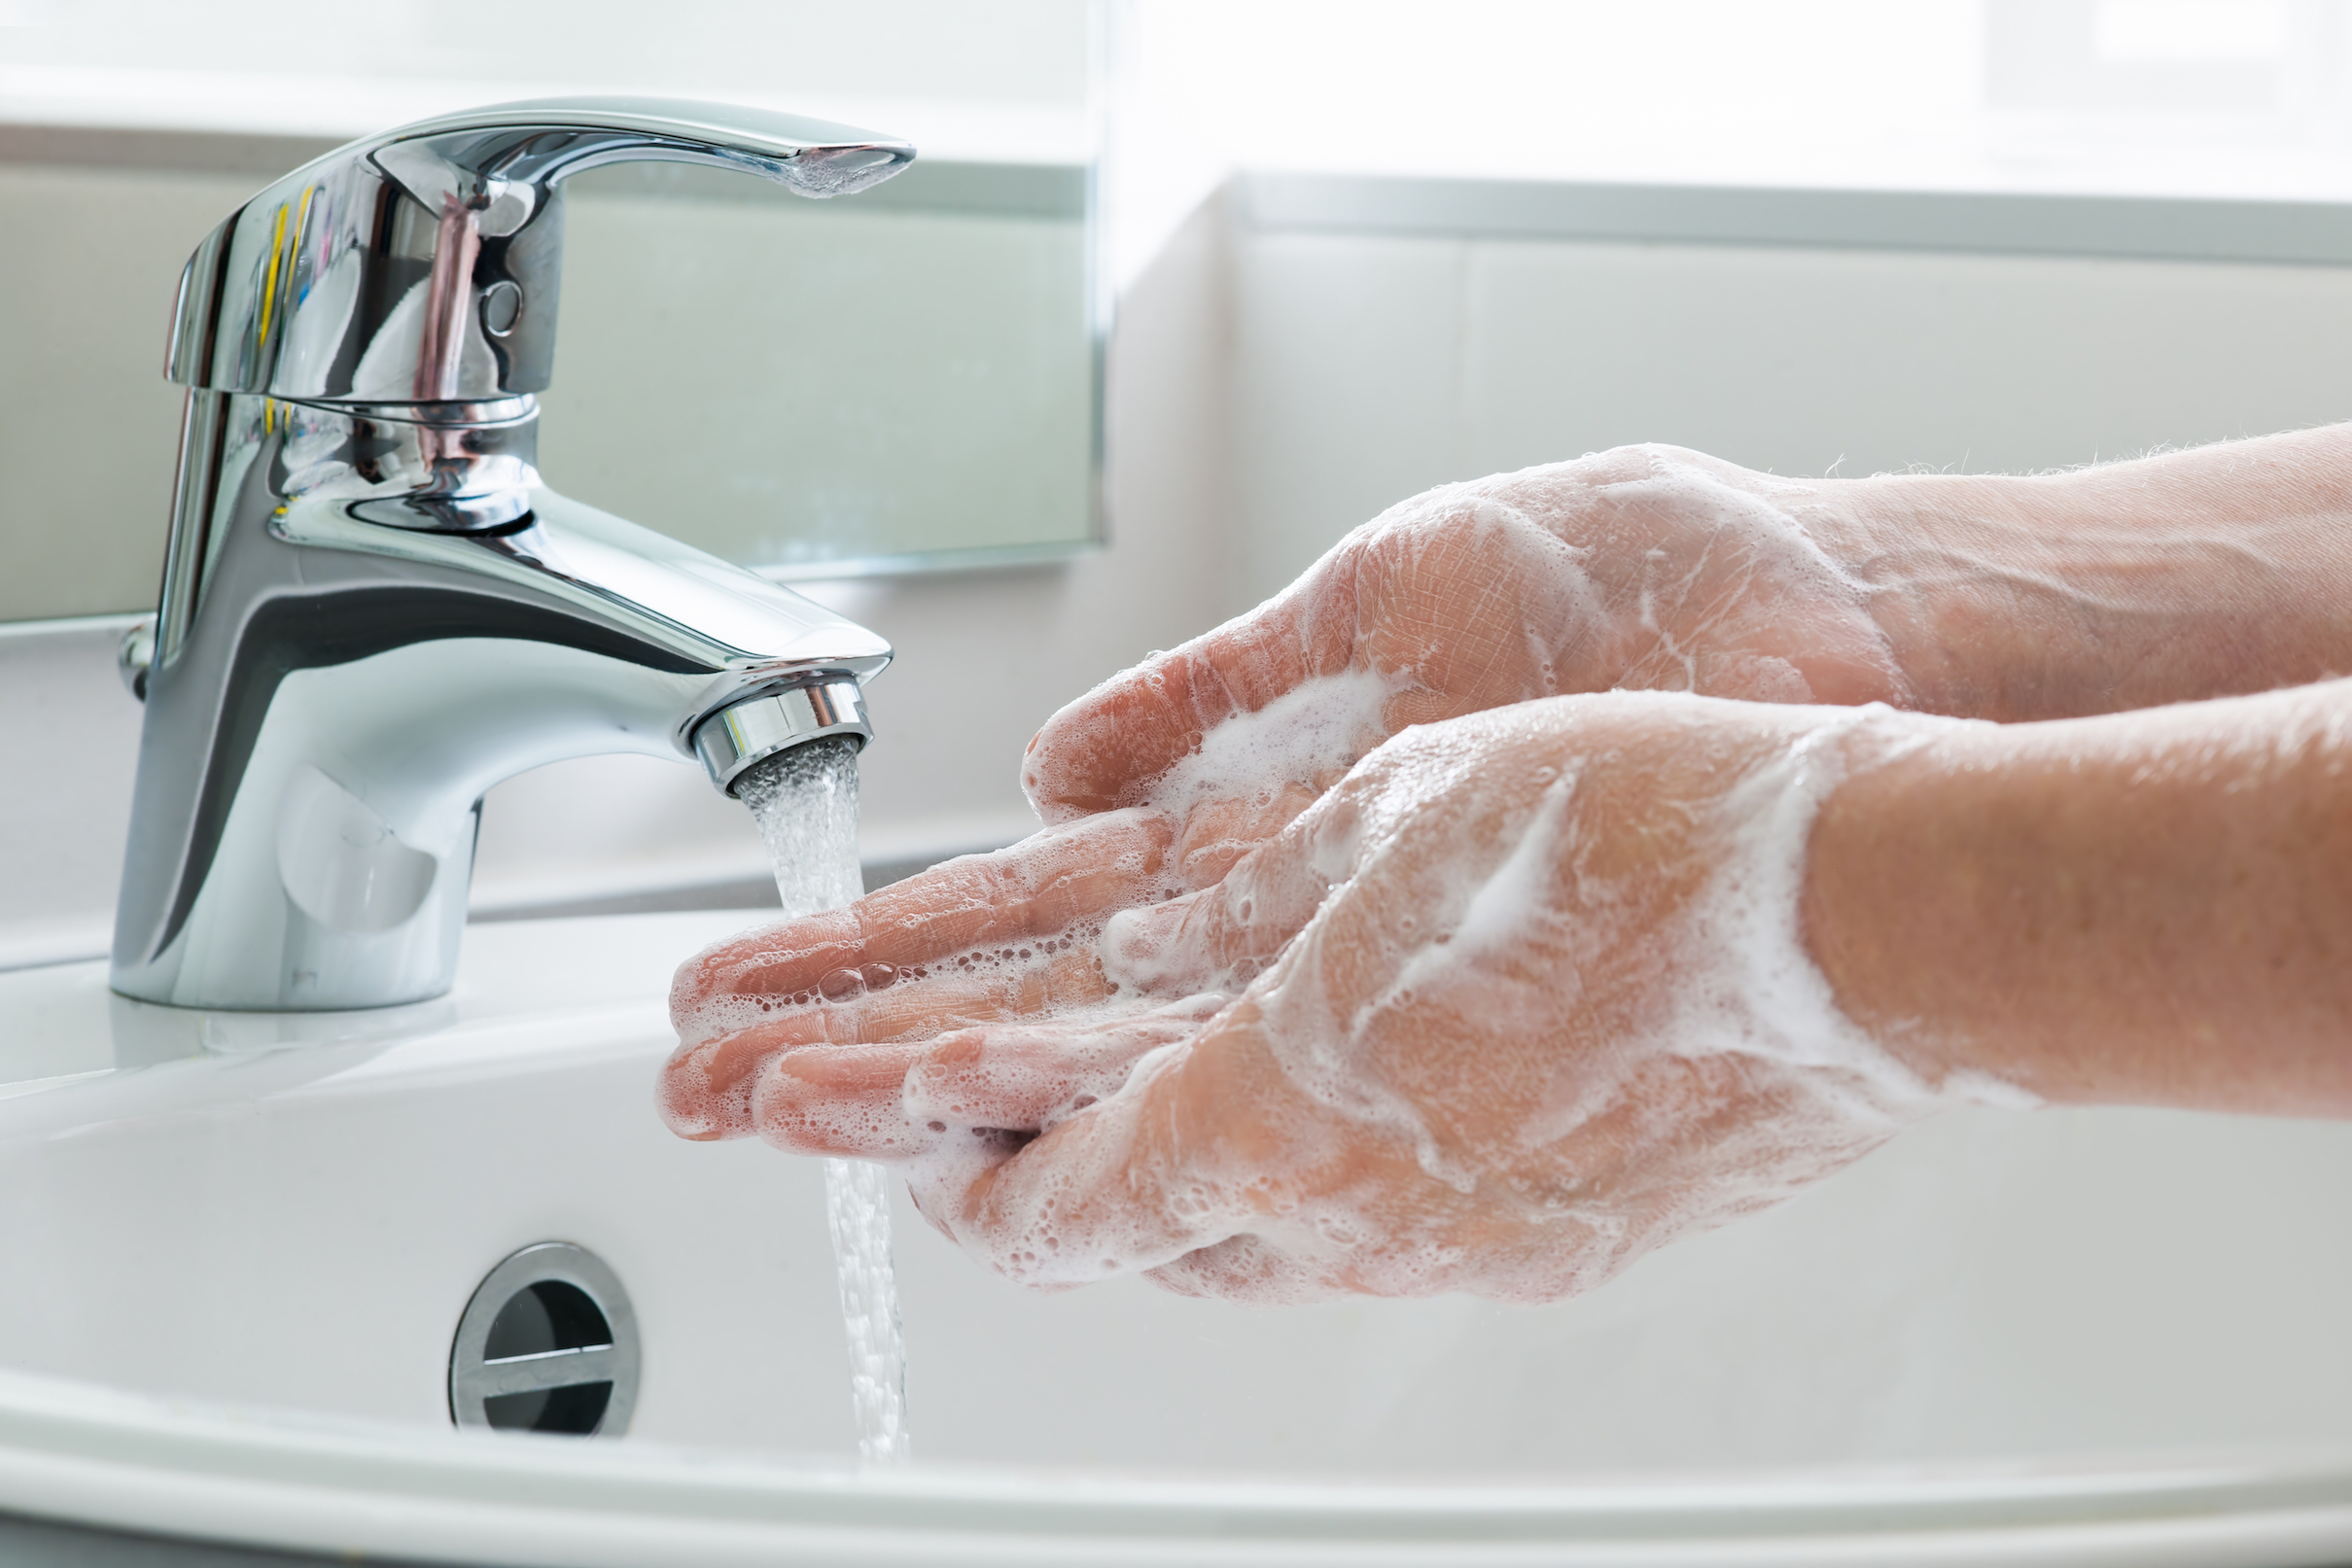 An emerging study from Rutgers University finds that washing your hands with cold water is just as effective as using warm water.